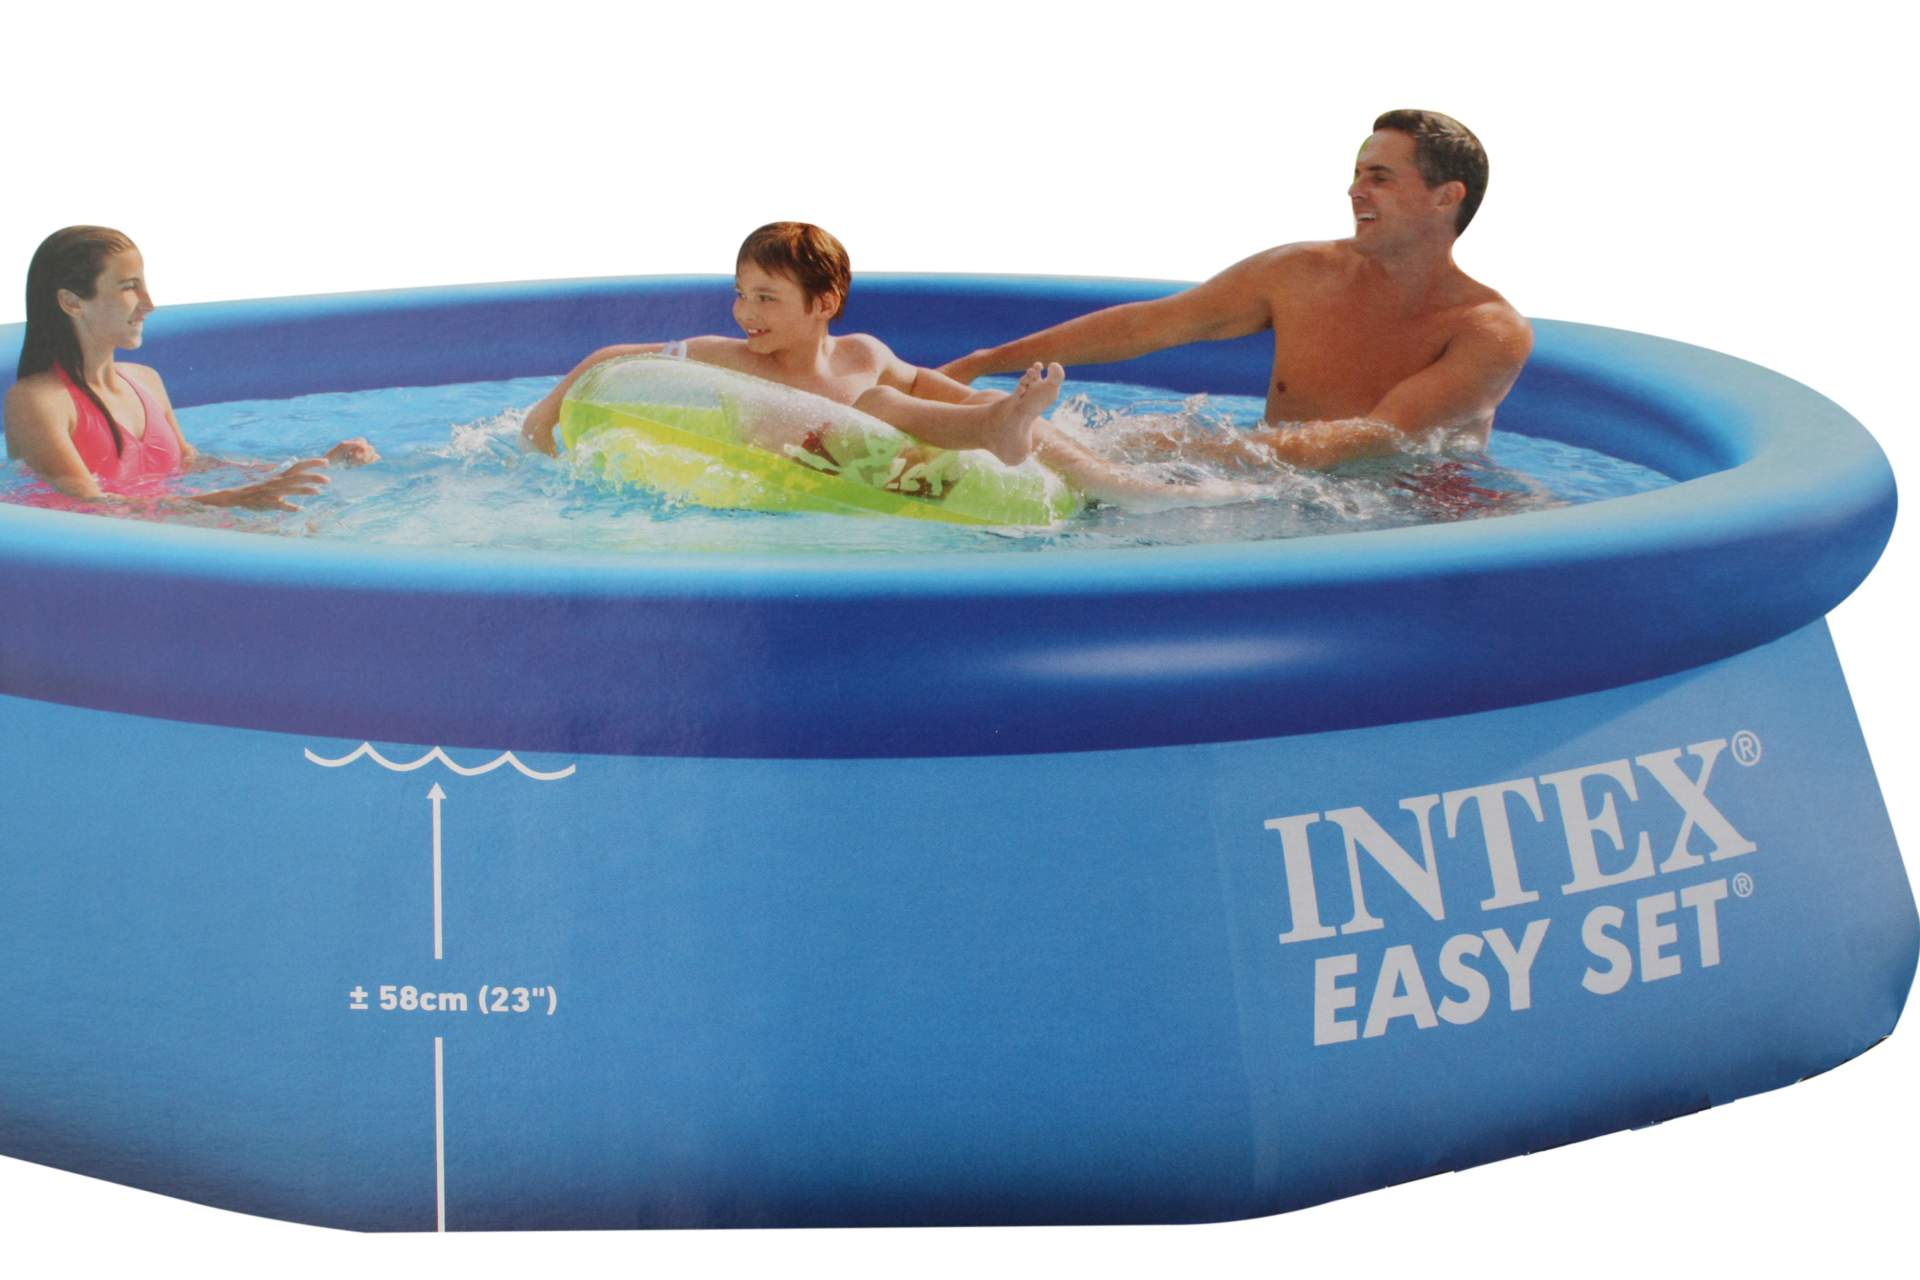 Pool Filteranlage Set Easy Pool Set Reviews Of 5 Best Intex Pools For Family Fun Pool